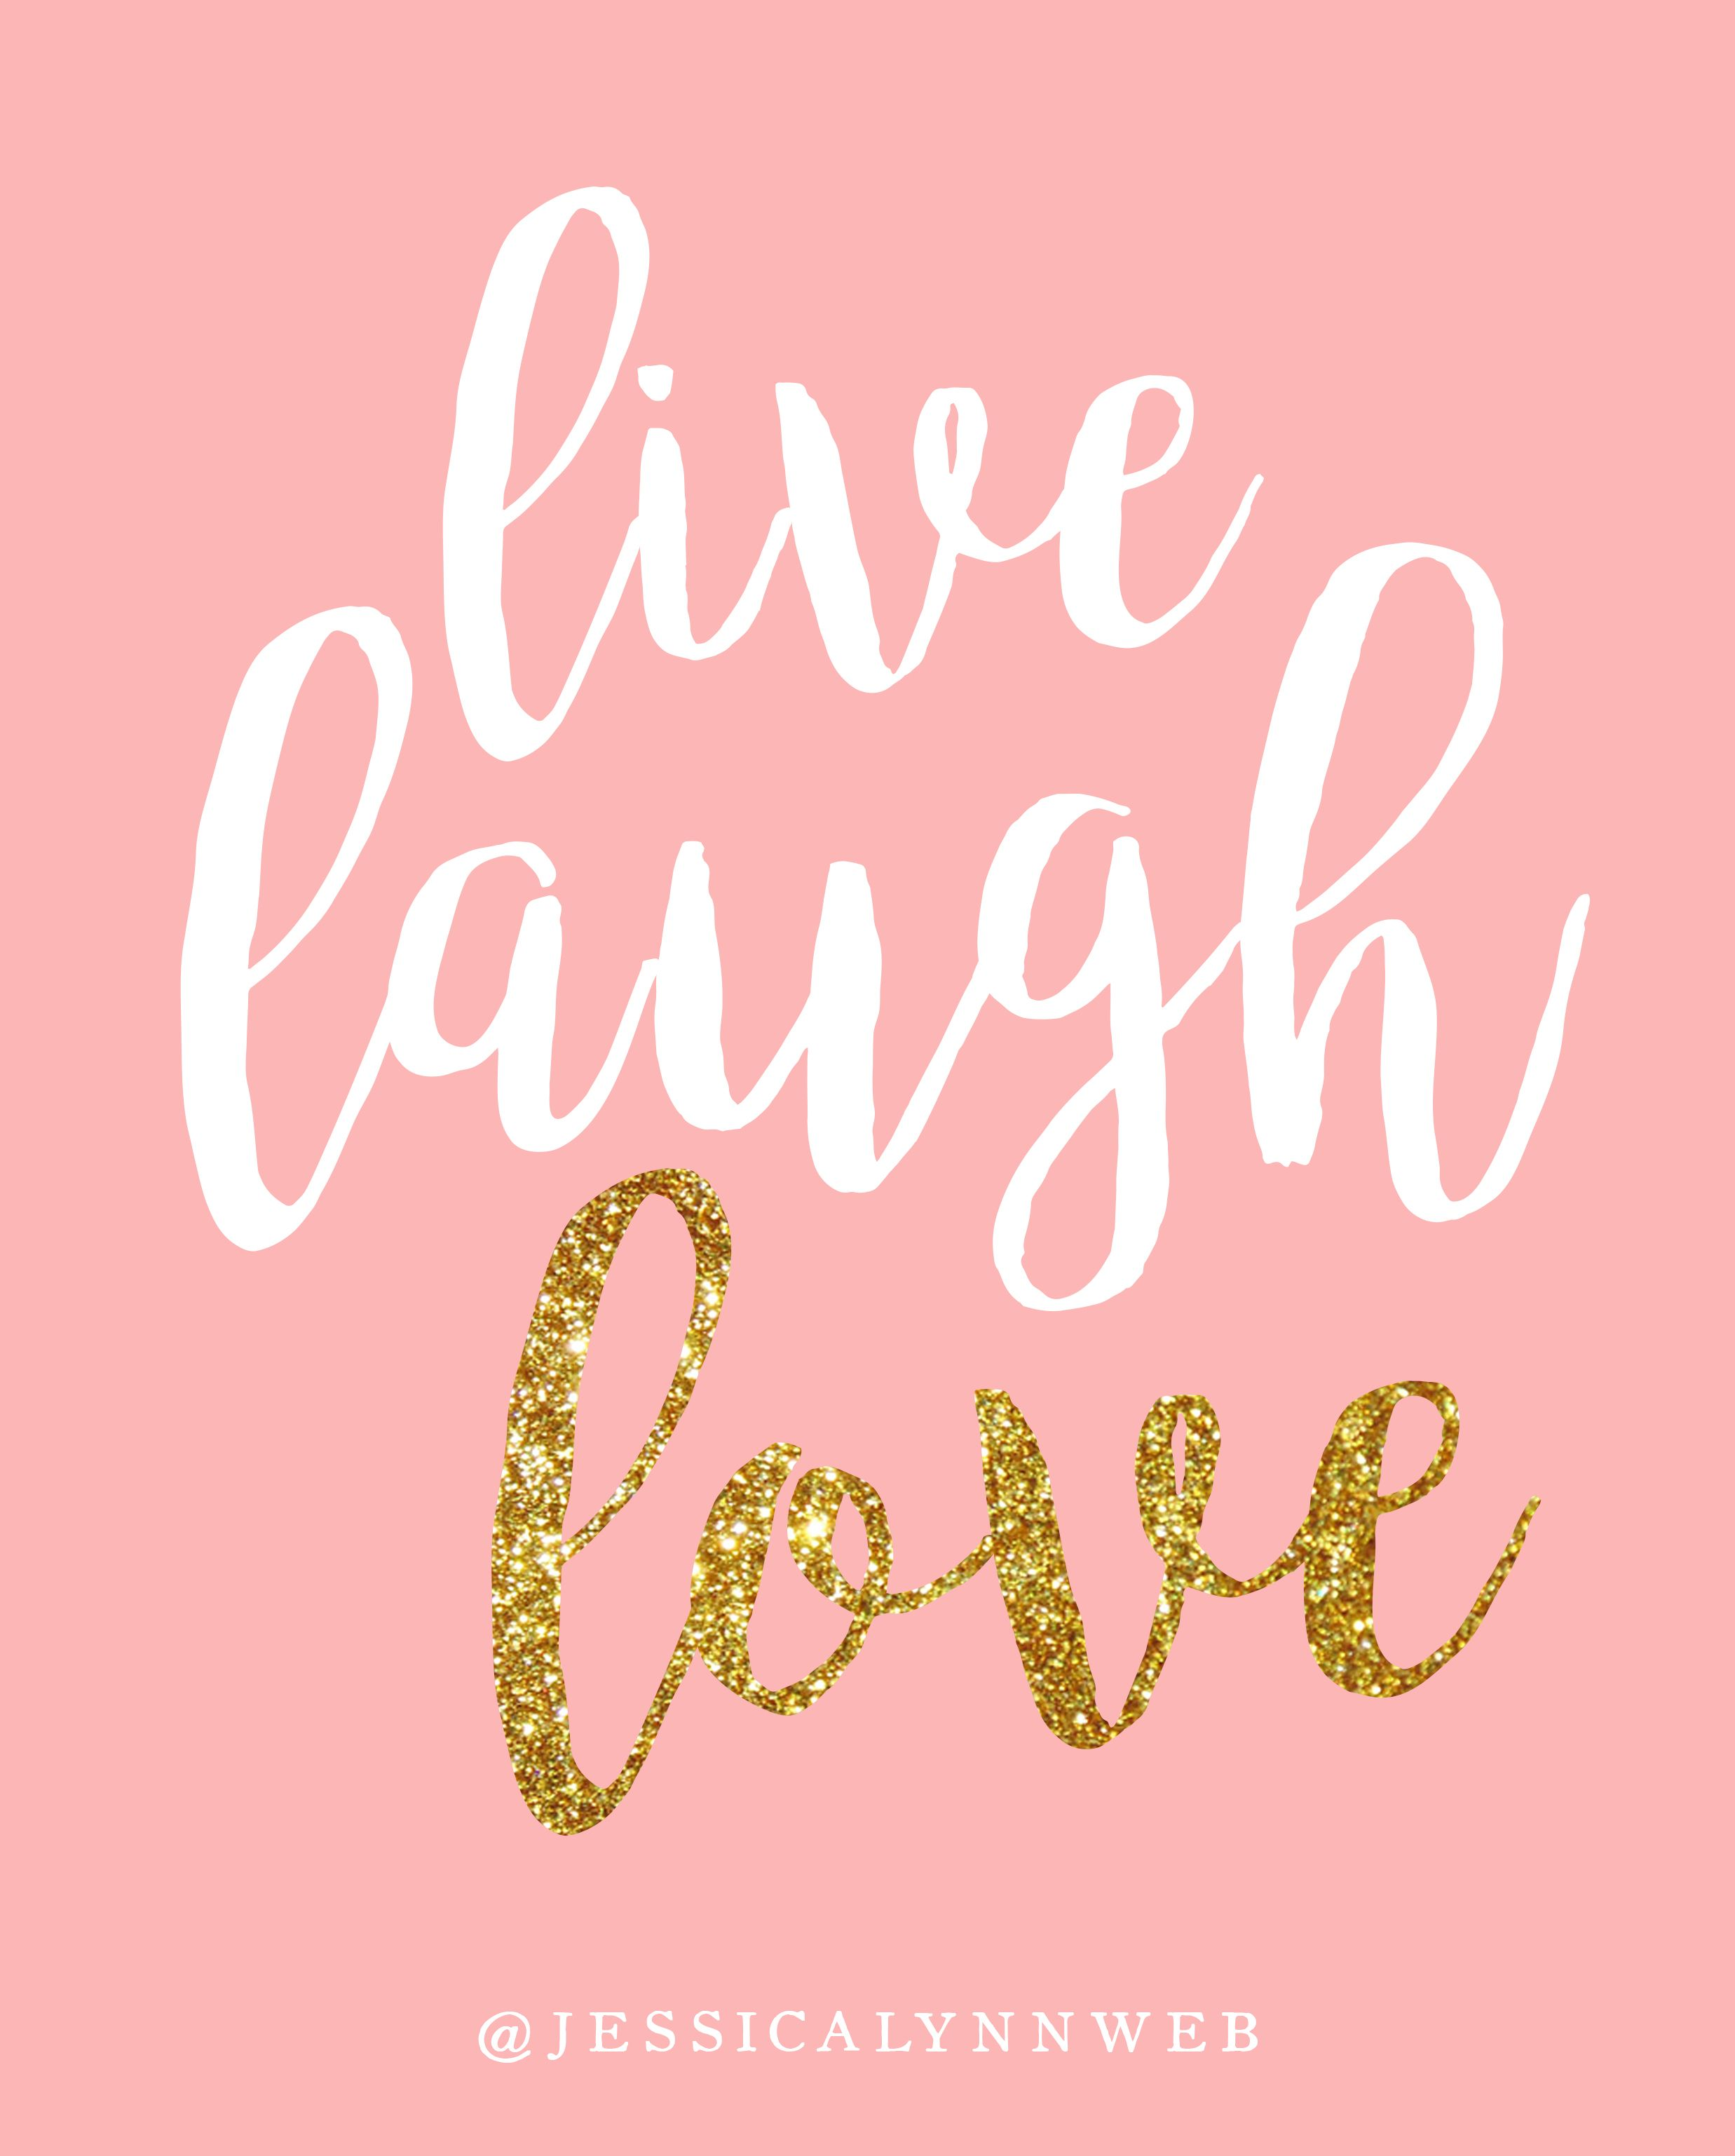 Live Laugh Love is a fun 8x10 pink and gold print. This piece has all of the girly elements (pink, glitter, pretty letters...) that make it a perfect statement piece in any room! Find it at jessicalynnweb.etsy.com